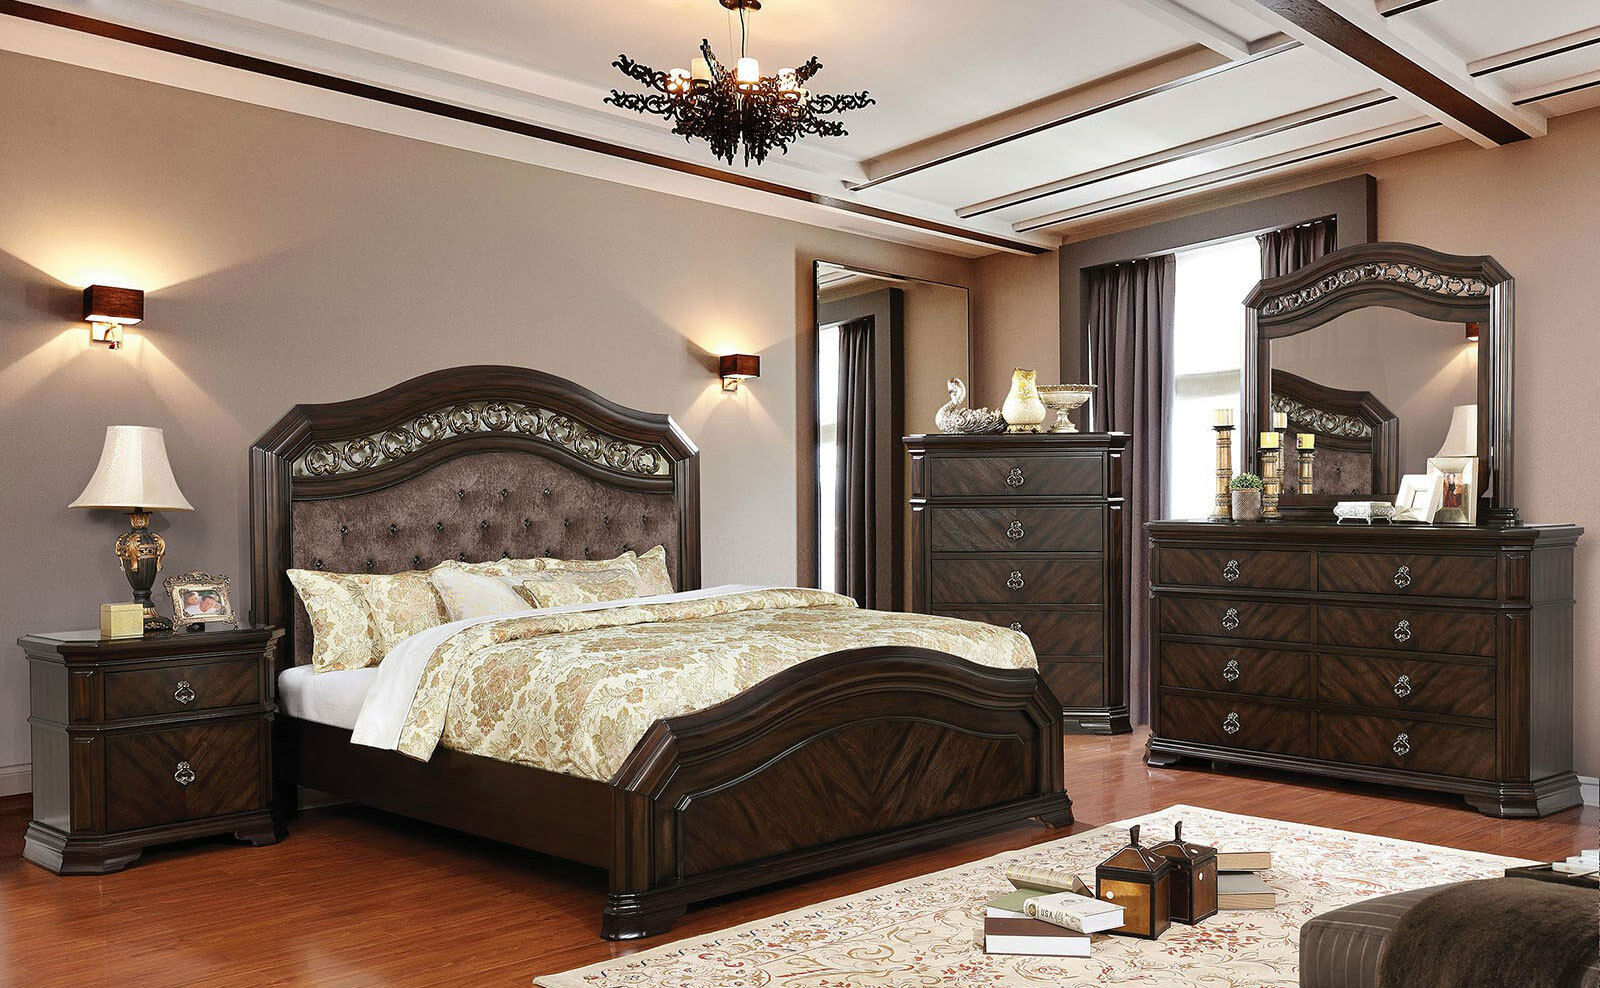 New traditional espresso brown bedroom furniture 5pcs - Espresso brown bedroom furniture ...